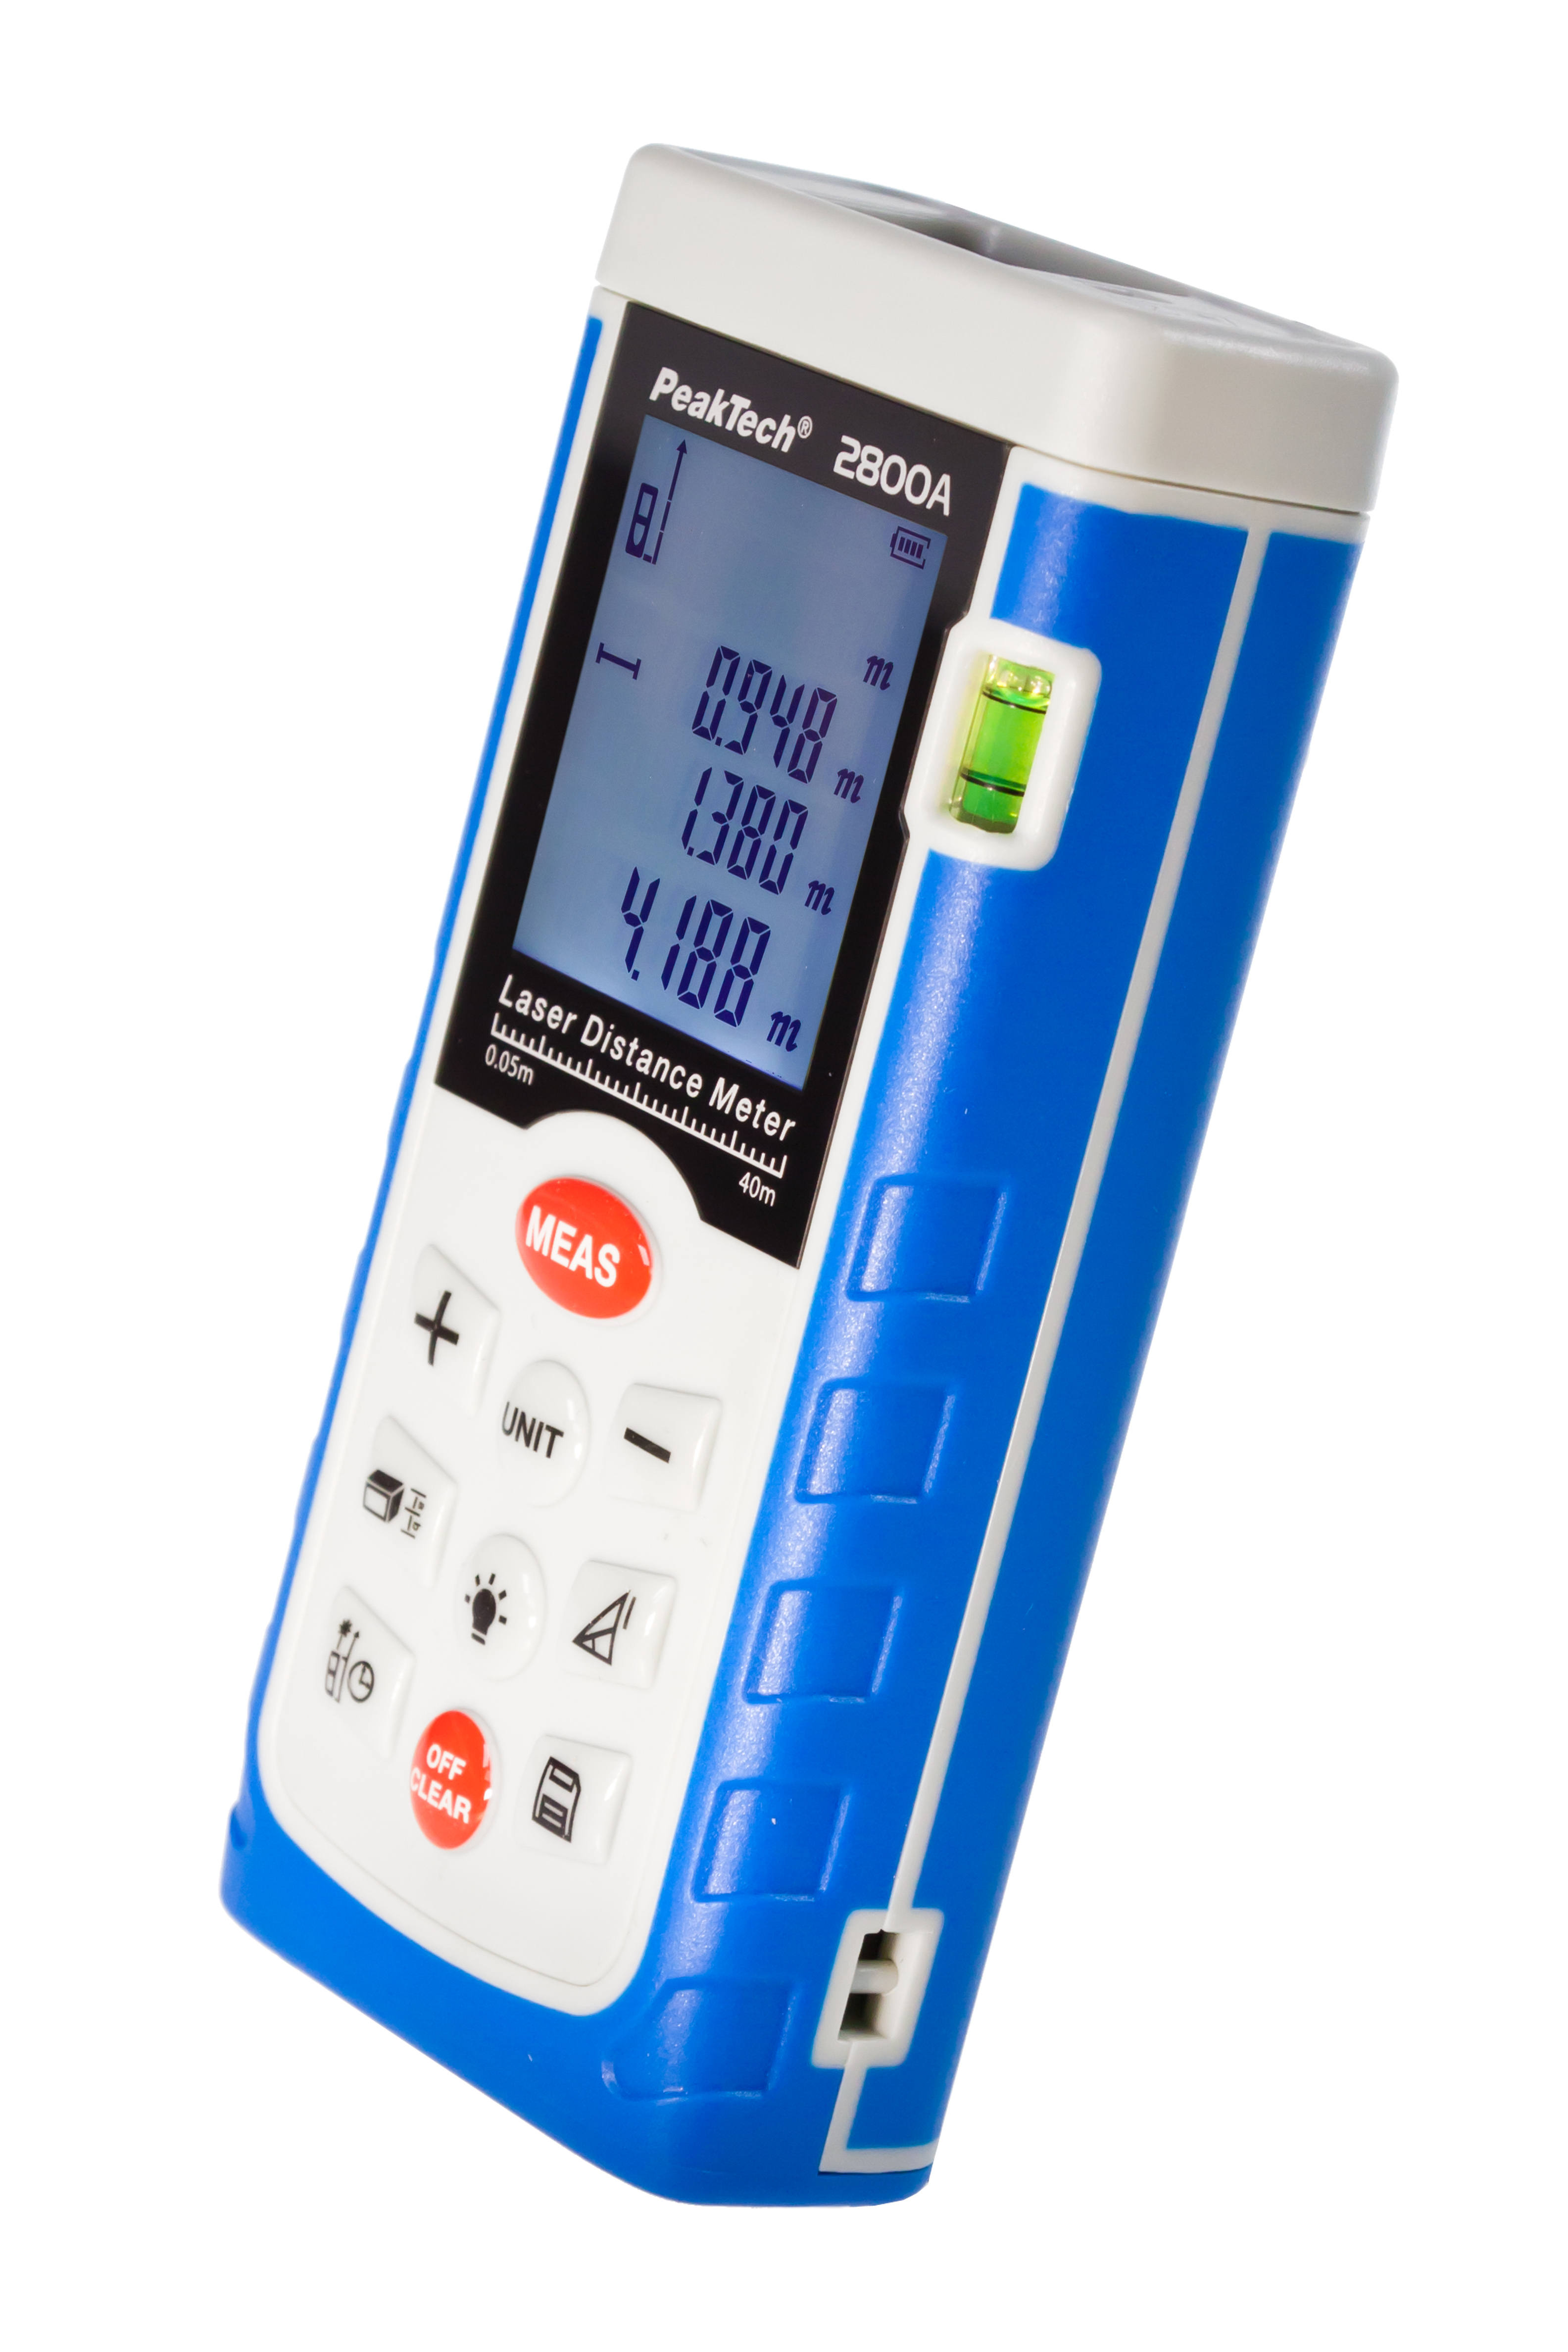 «PeakTech® P 2800 A» Laser distance measuring device up to 40 meters